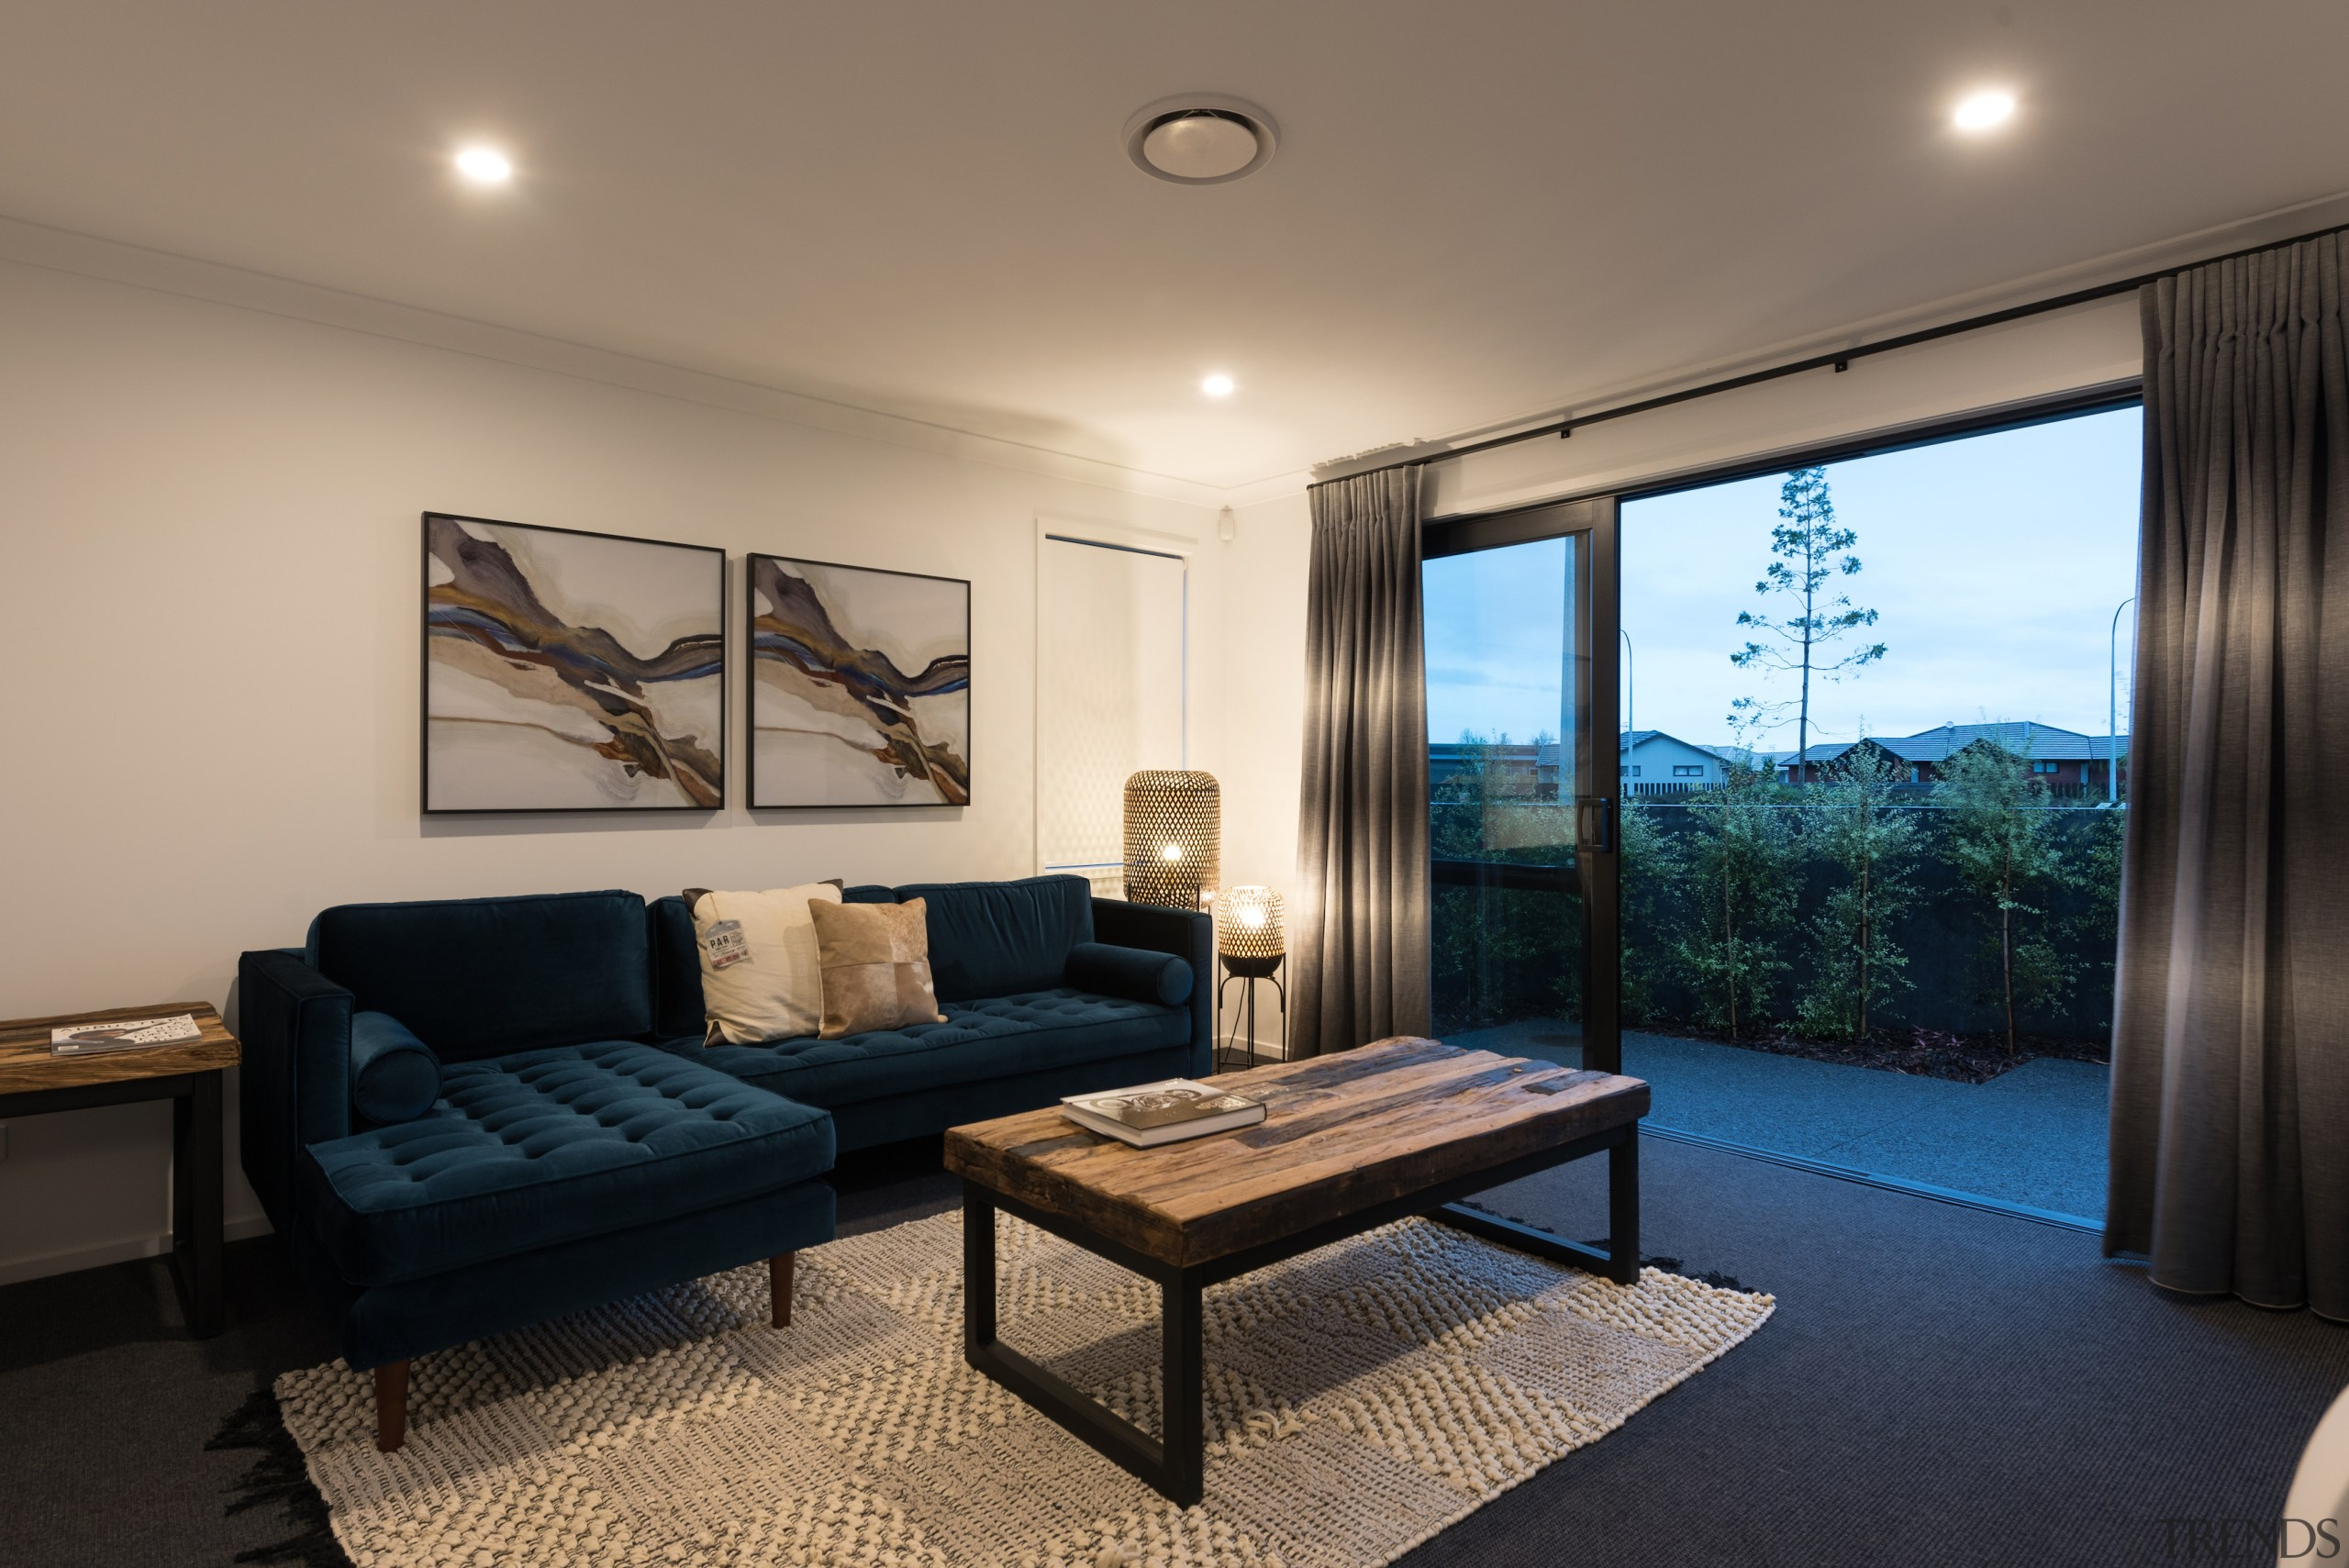 The home's second living space also opens up